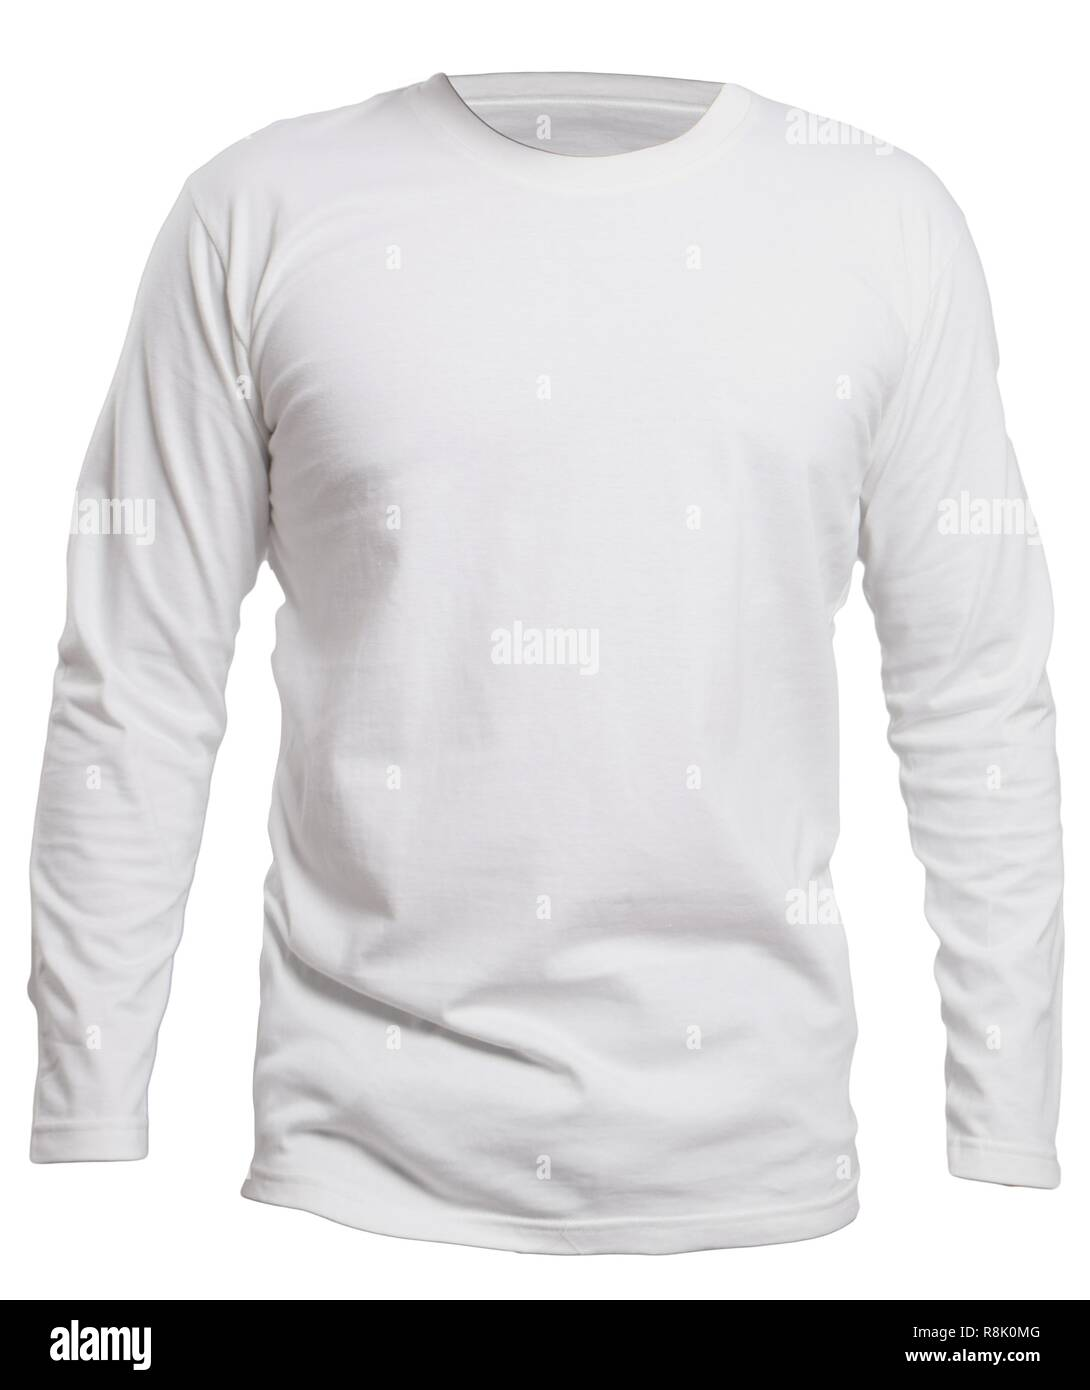 Blank Long Sleeve Shirt Mock Up Template Front View Isolated On